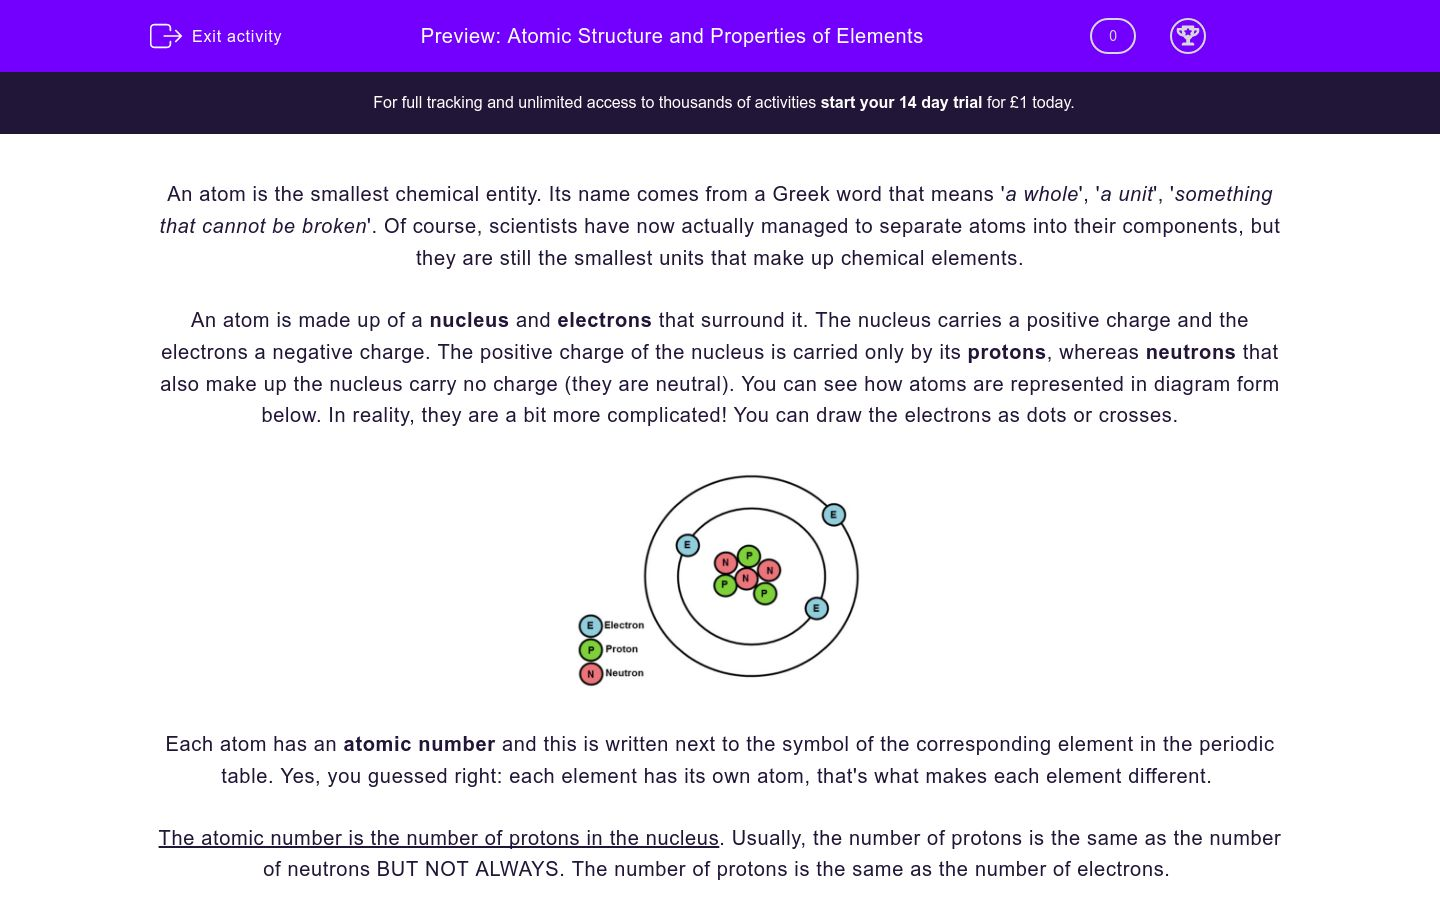 'Understand Atomic Structure and Properties of Elements' worksheet